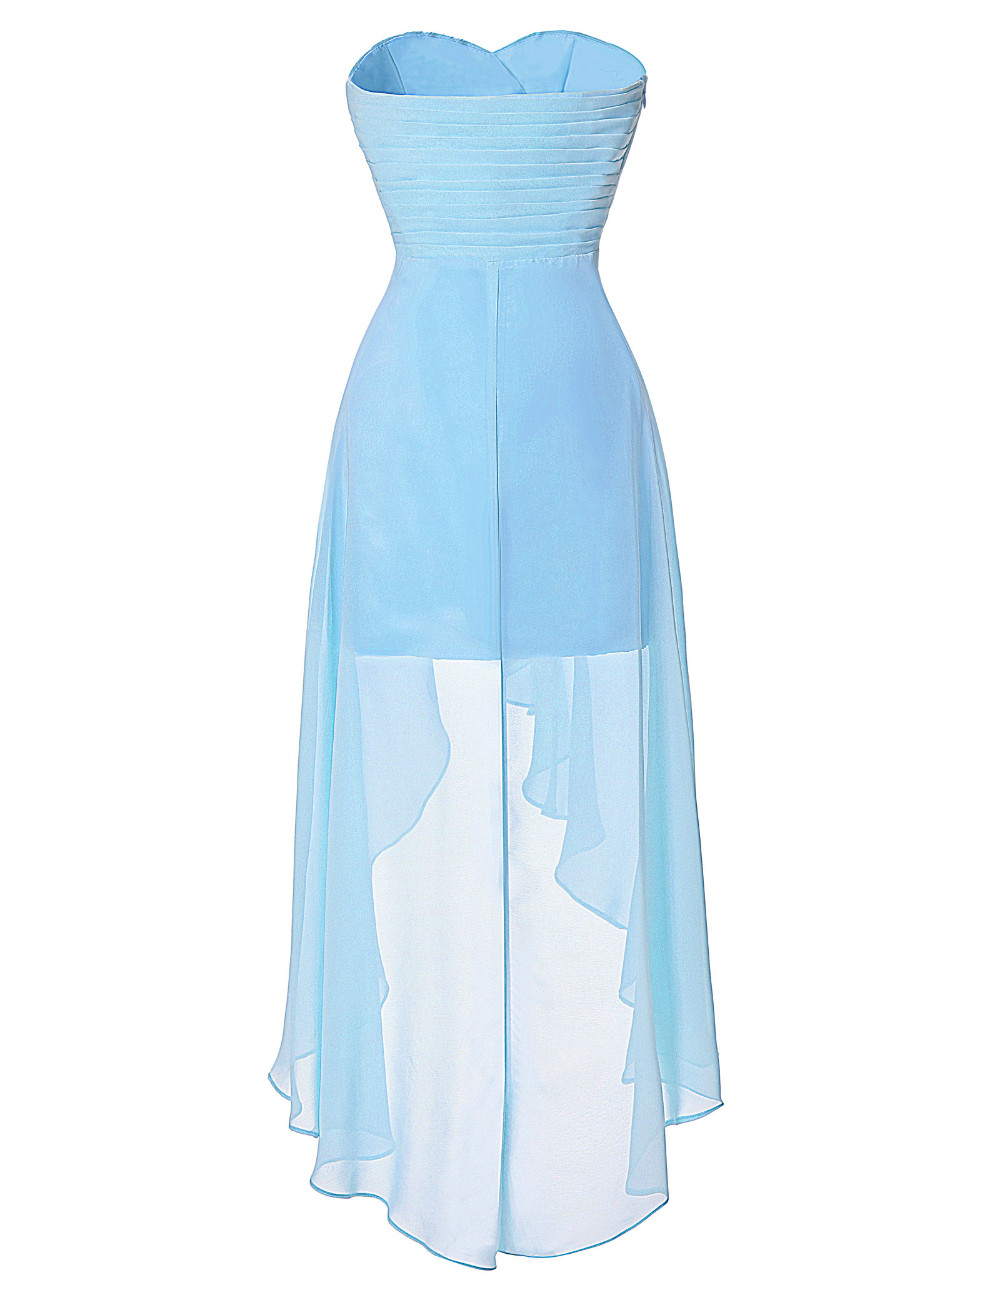 High Low Bridesmaid Dress 2017 Short Front Long Back Prom Gown Strapless Bead Sequin Pink Turquoise Bridesmaid Dress Grace Karin 14